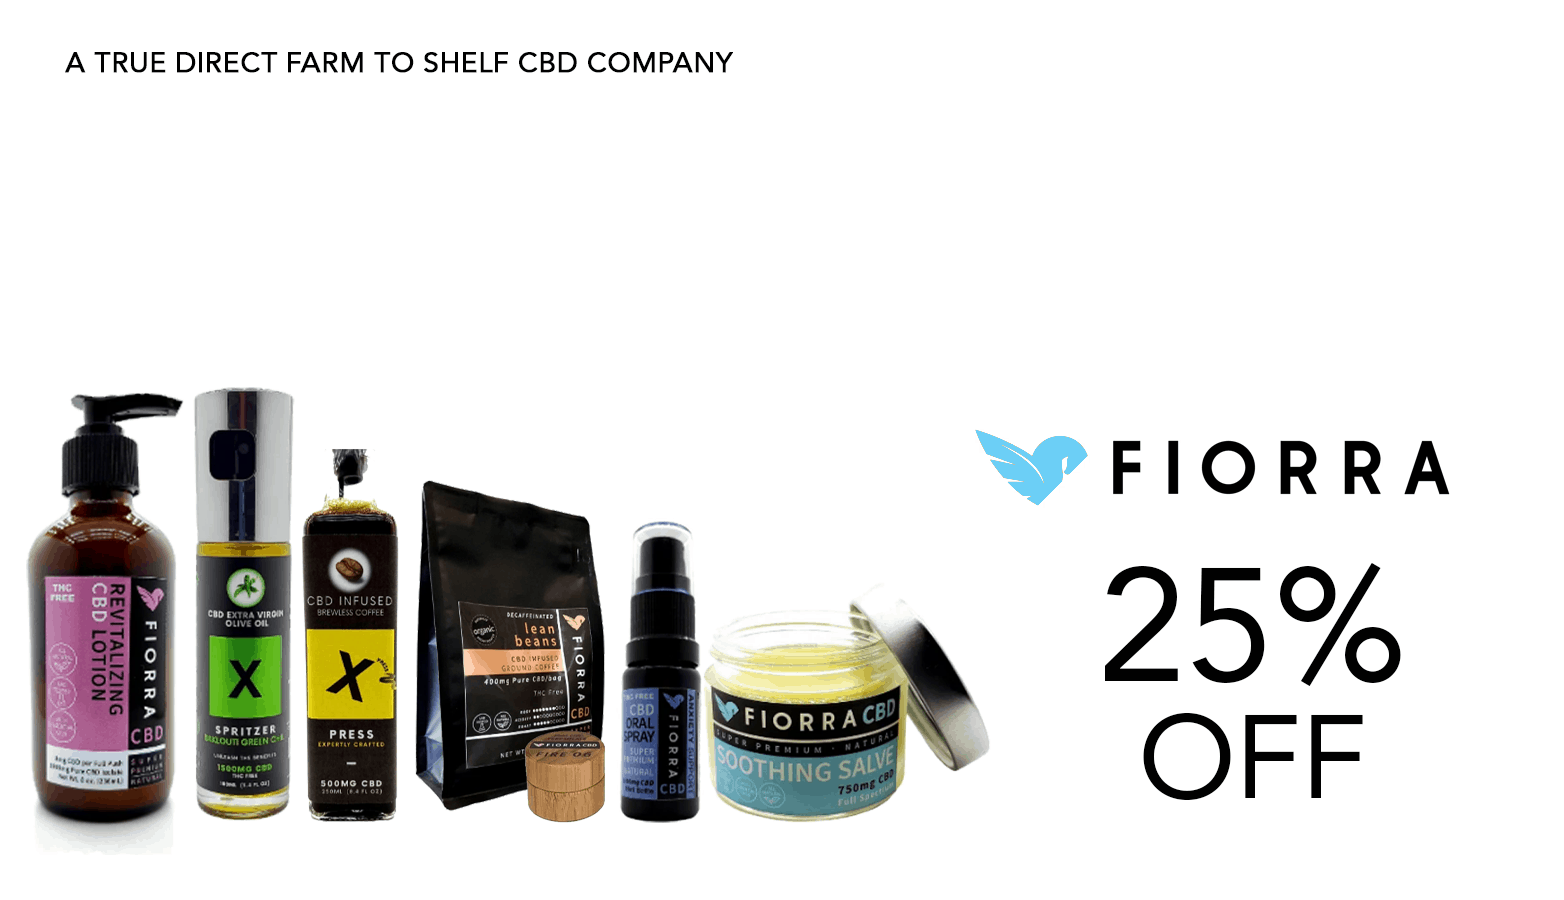 Fiorra CBD Coupon Code Offer Website